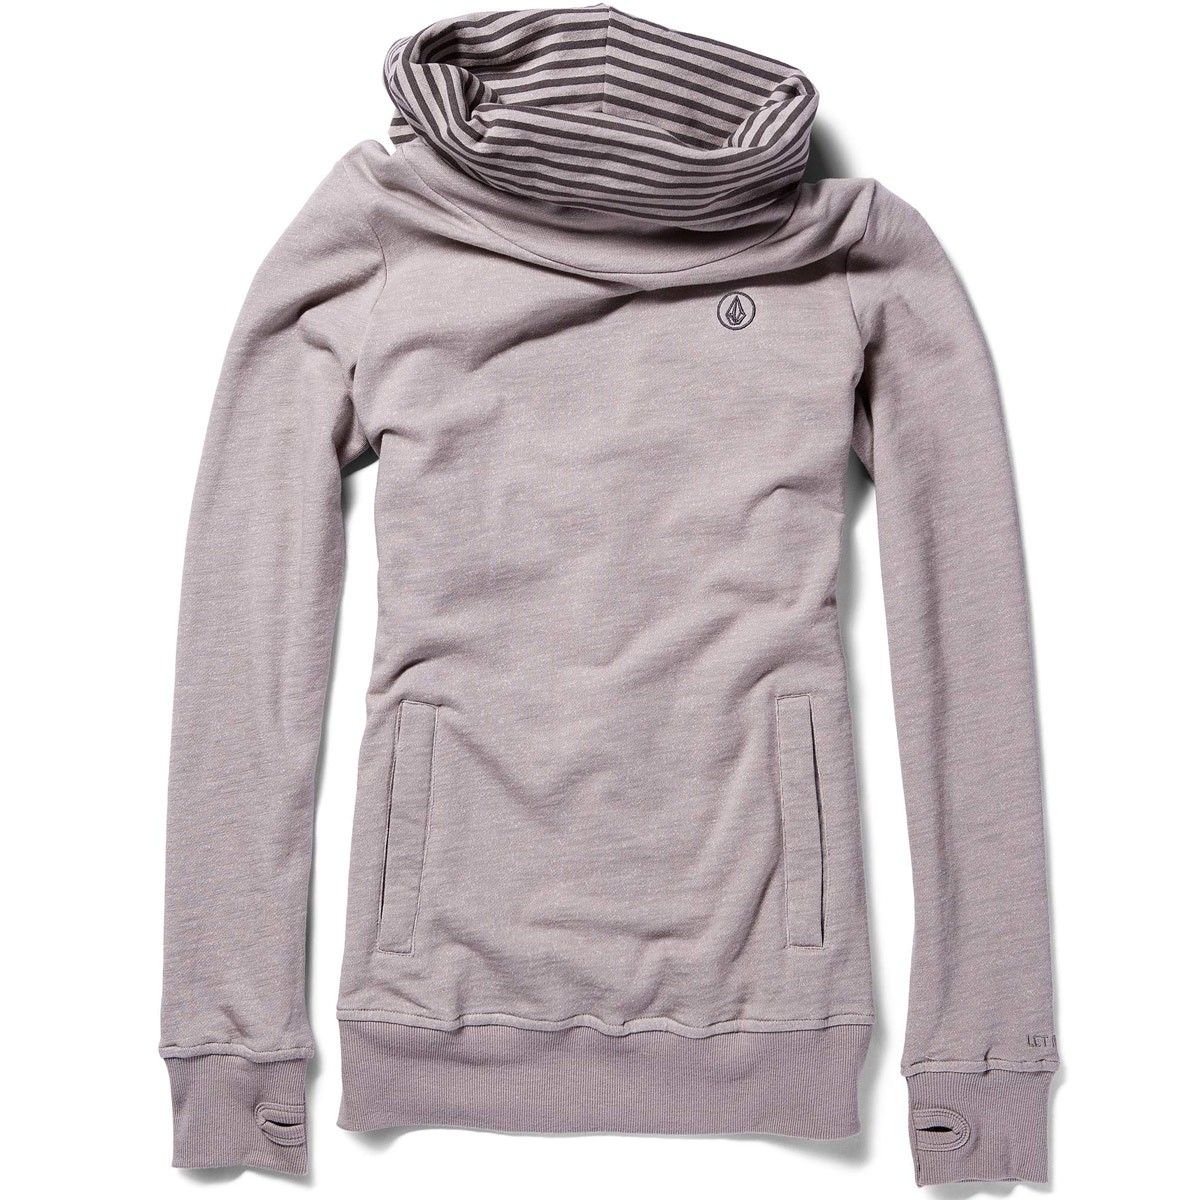 Go to Mobile Site. Volcom Tower Pullover Women's Sweatshirt